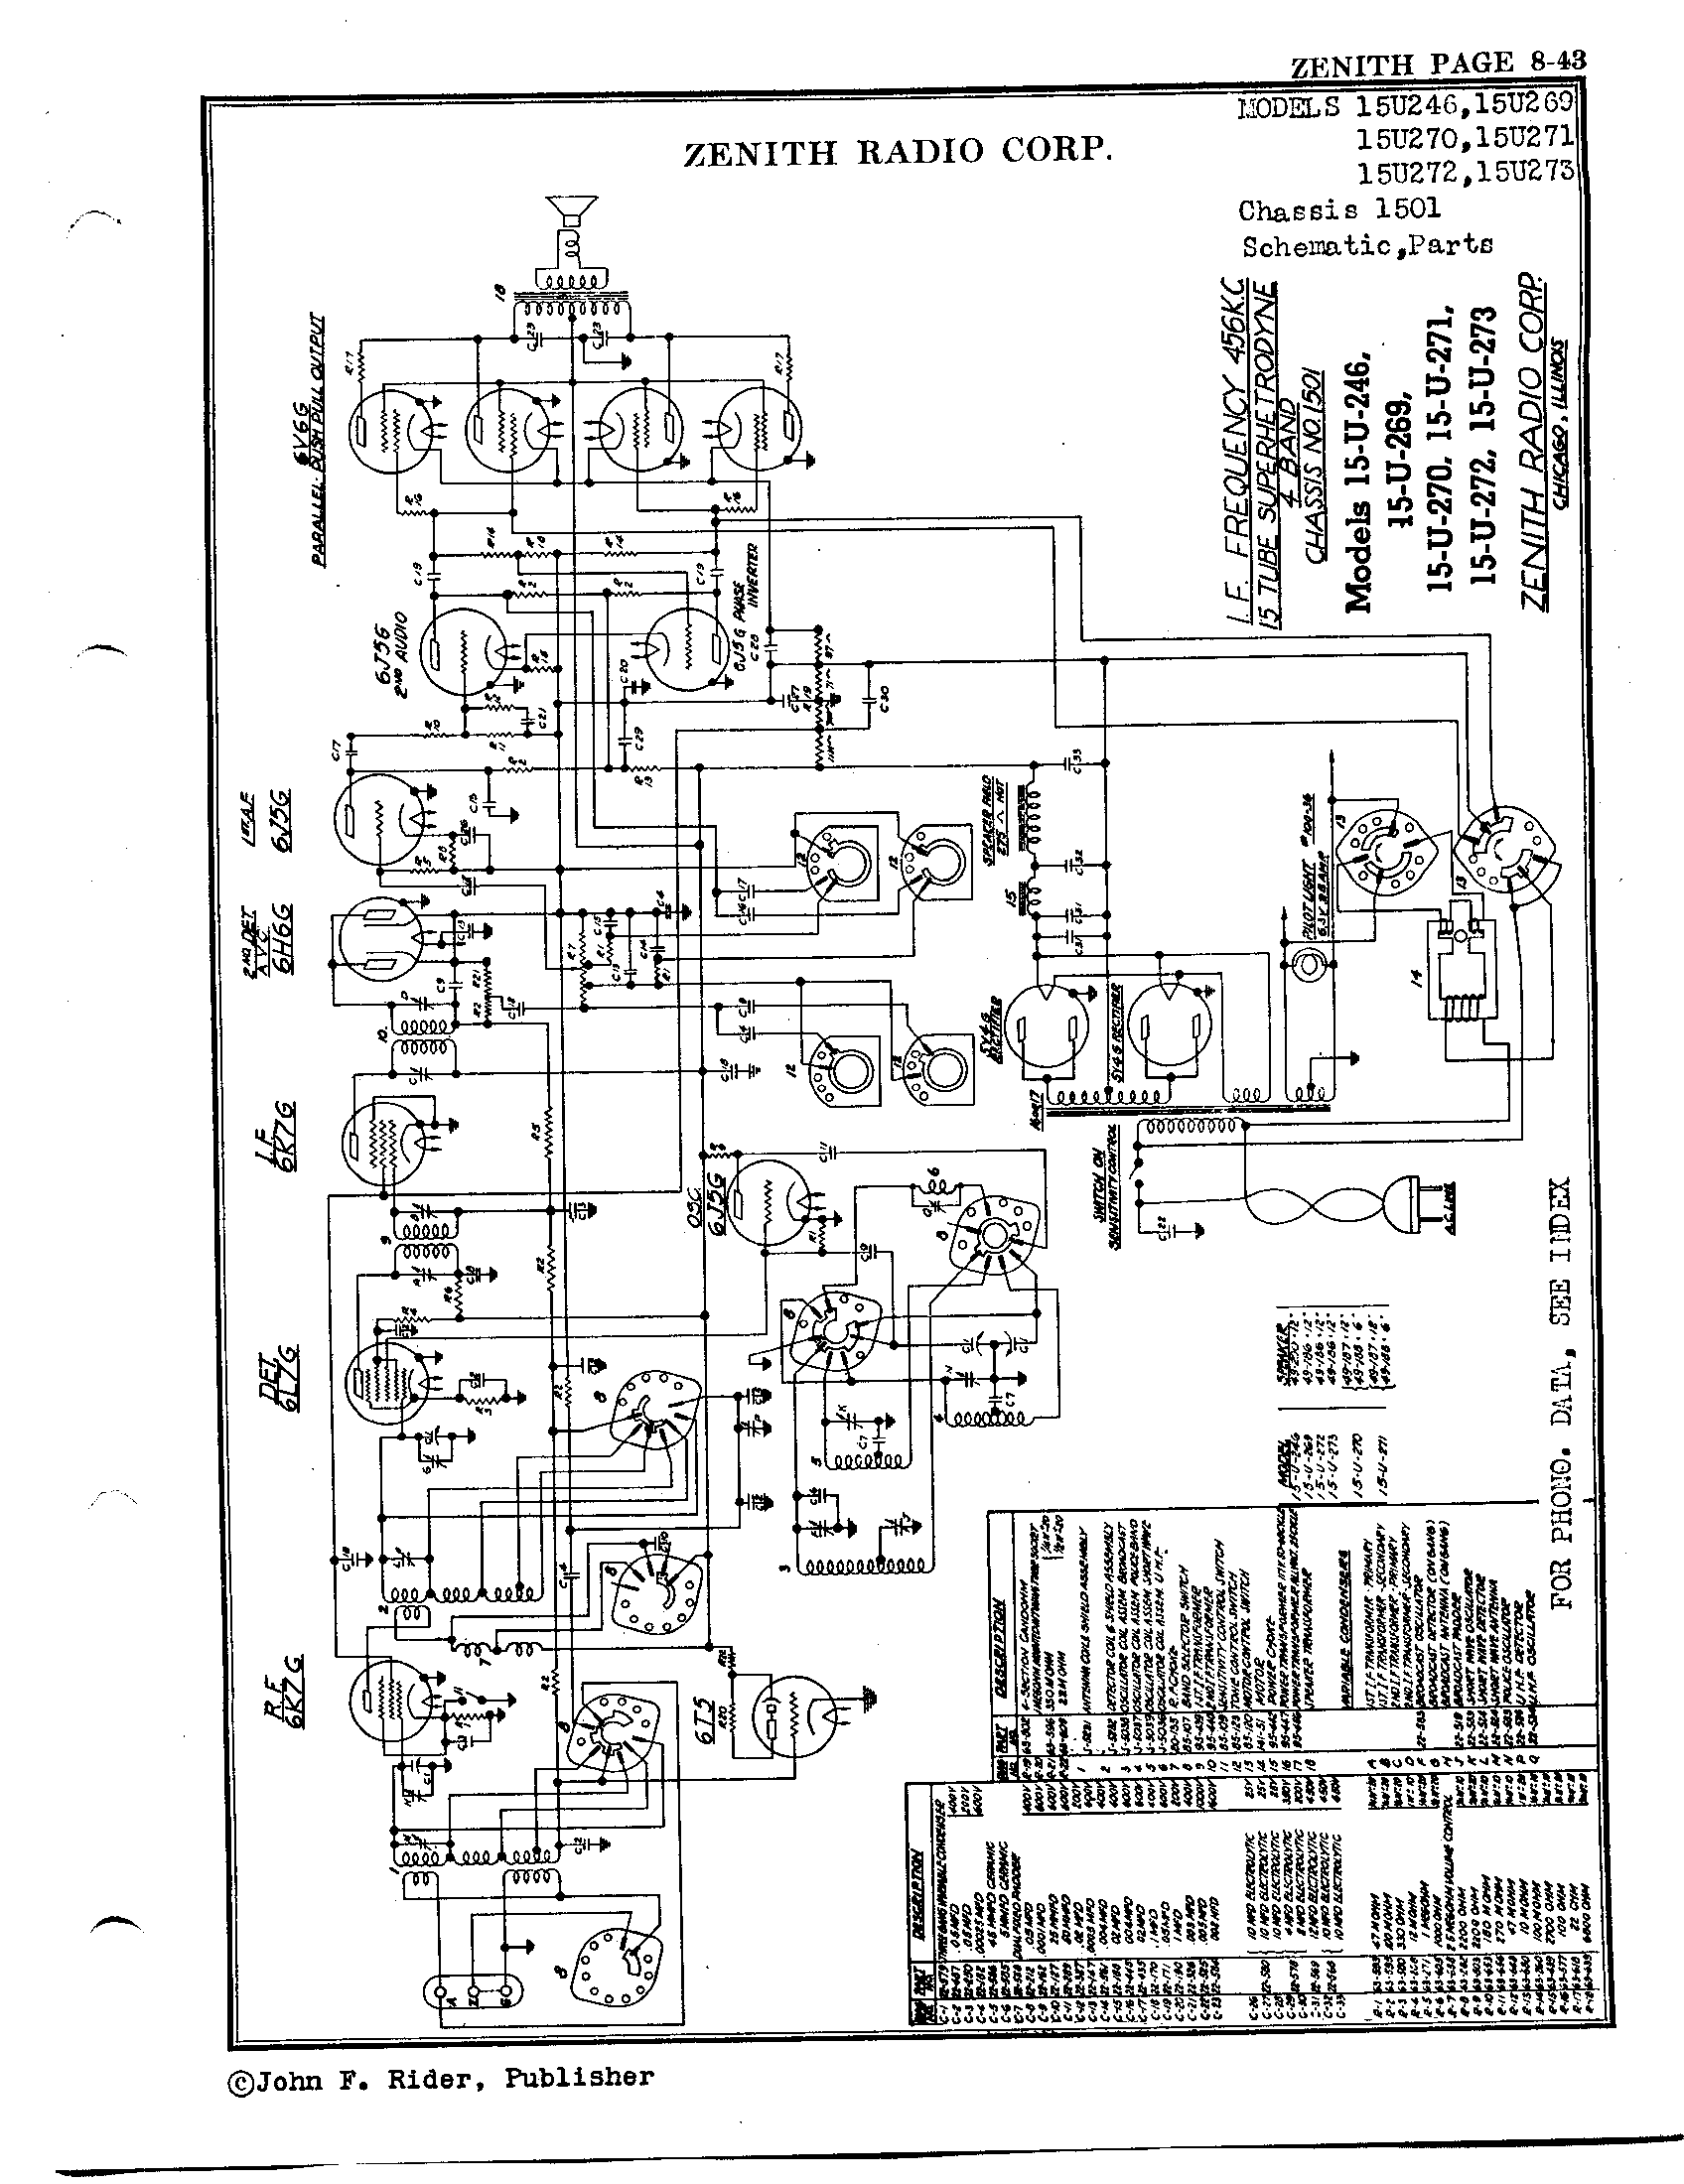 Zenith Radio Corp 15u269 Antique Electronic Supply. Page 1 8267 Kb Rider Manual Volume 8. Wiring. Zenith Tube Radio Schematics N73 1 At Scoala.co